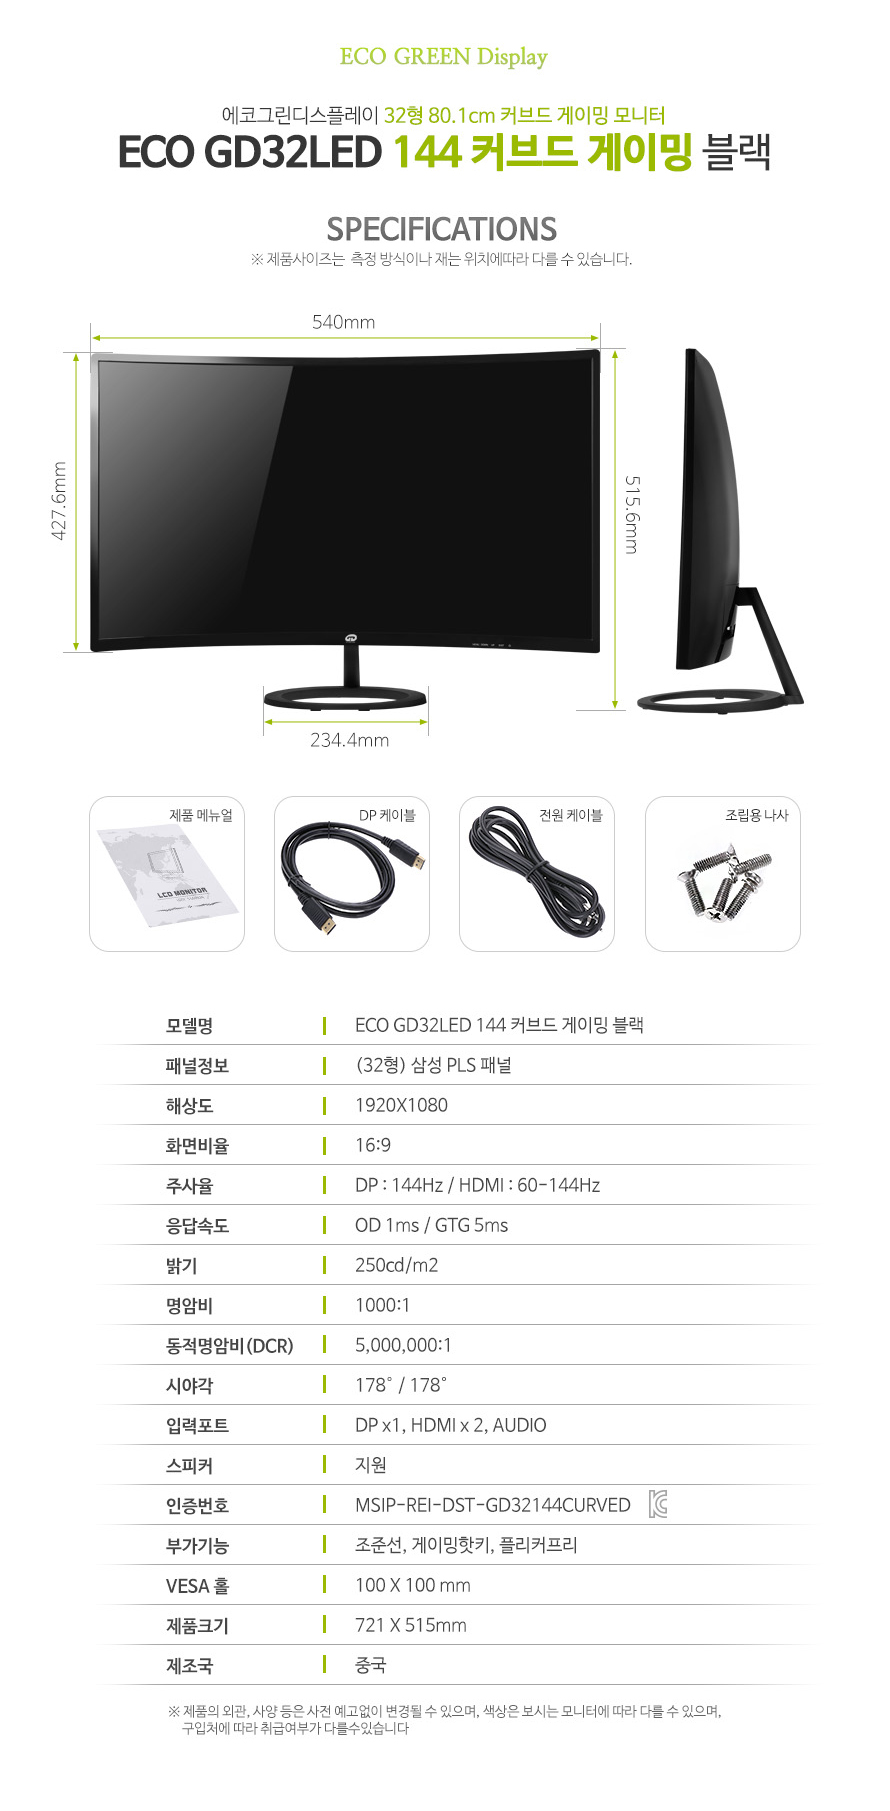 ECO GD32LED 144 CURVED SPECIFICATIONS